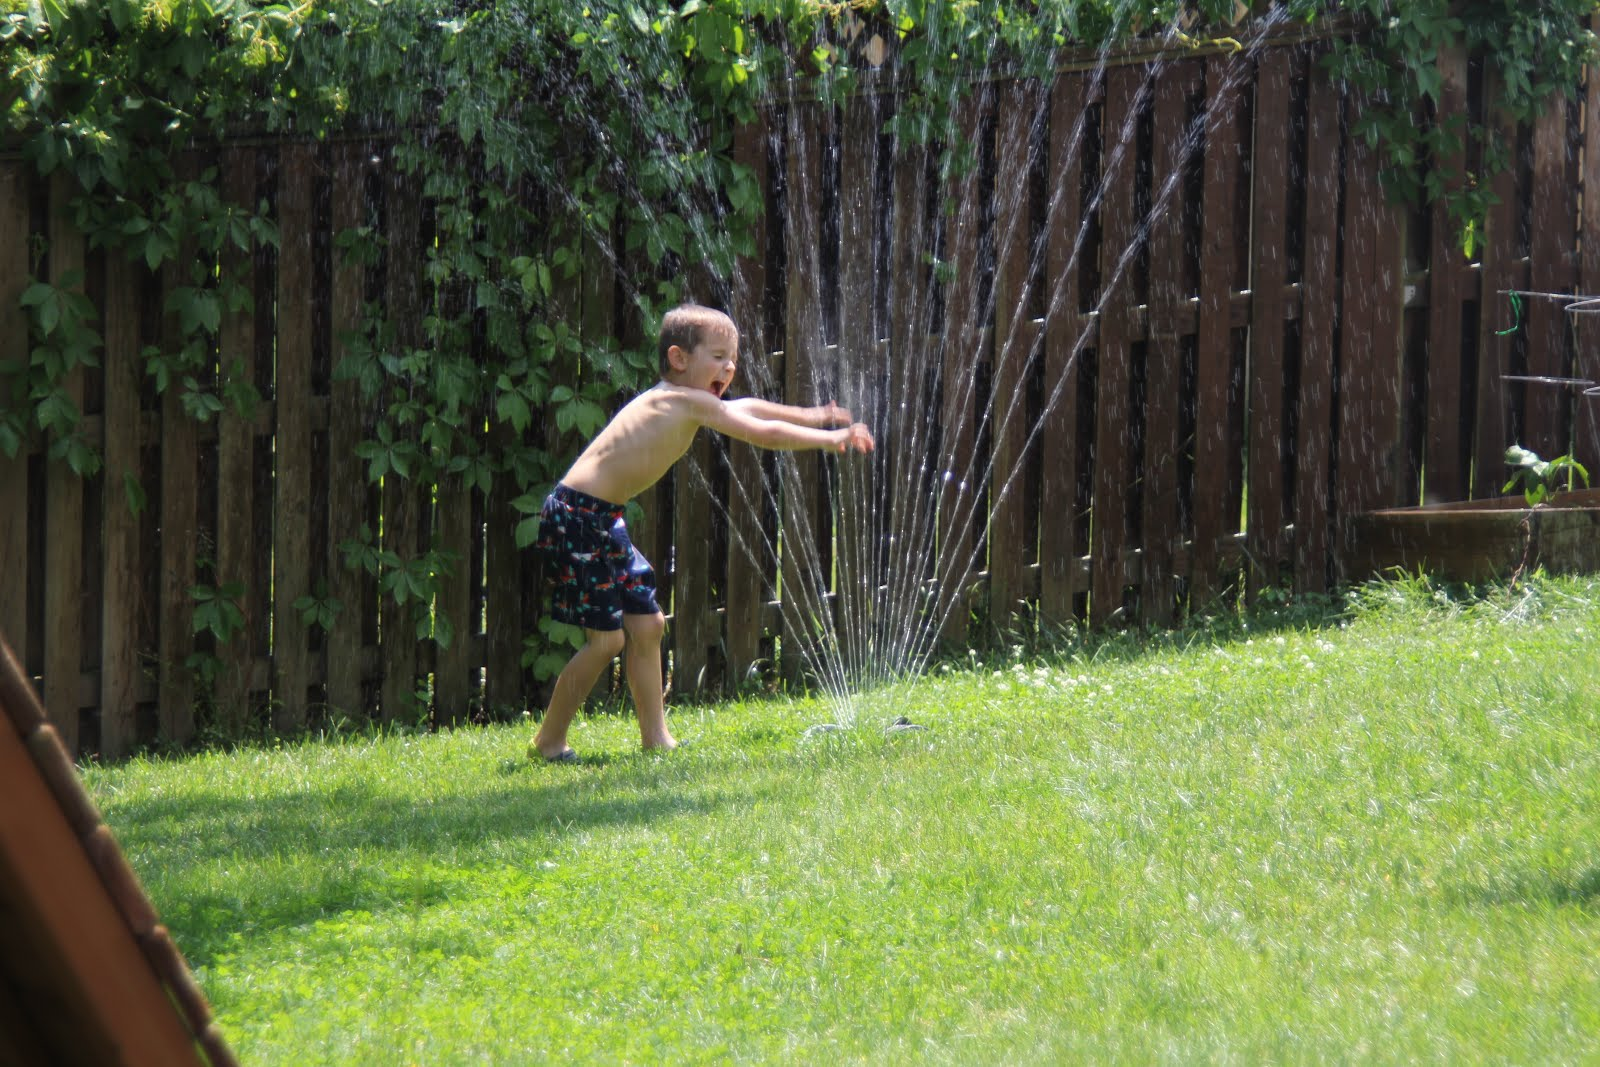 here now playing in the sprinkler